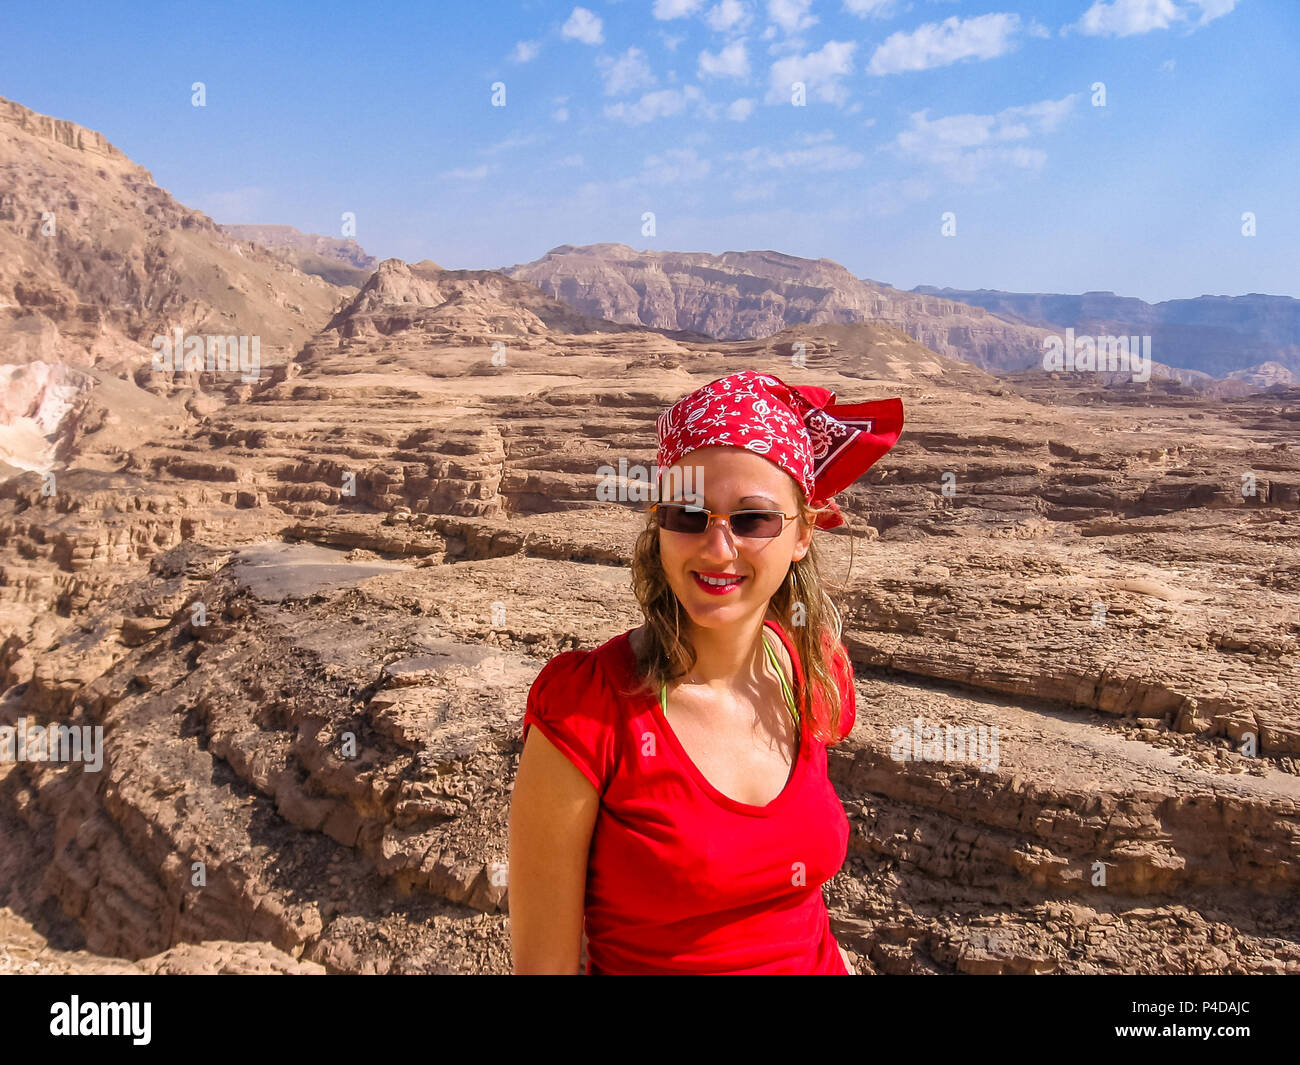 woman at the spectacular gorge of Colored Canyon, near Mount Sinai and Nuweiba, Sinai Peninsula in Egypt. - Stock Image